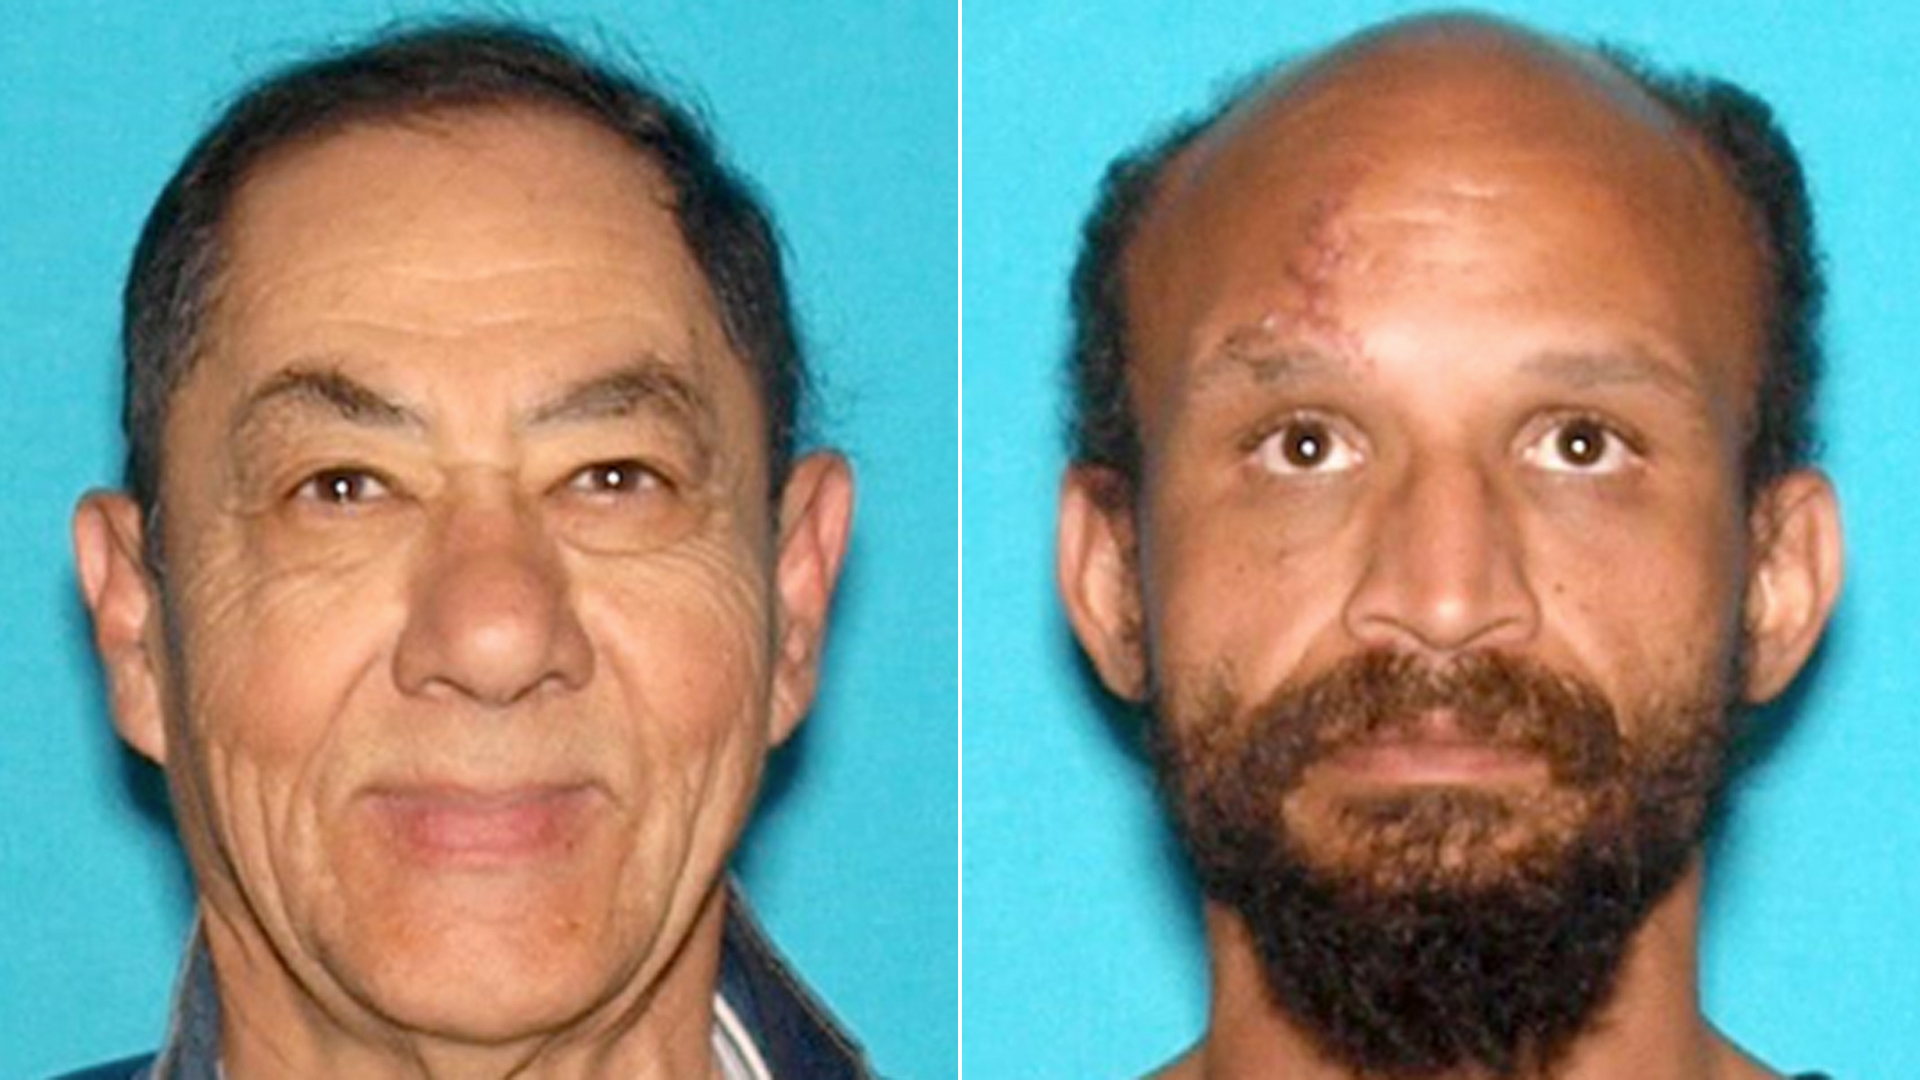 Homicide victim Hernando Beltran, 62, of San Bernardino, left, and suspect Donald Eugene Renfro, 39, of San Bernardino, pictured in photos released by the San Bernardino Police Department on June 13, 2019.